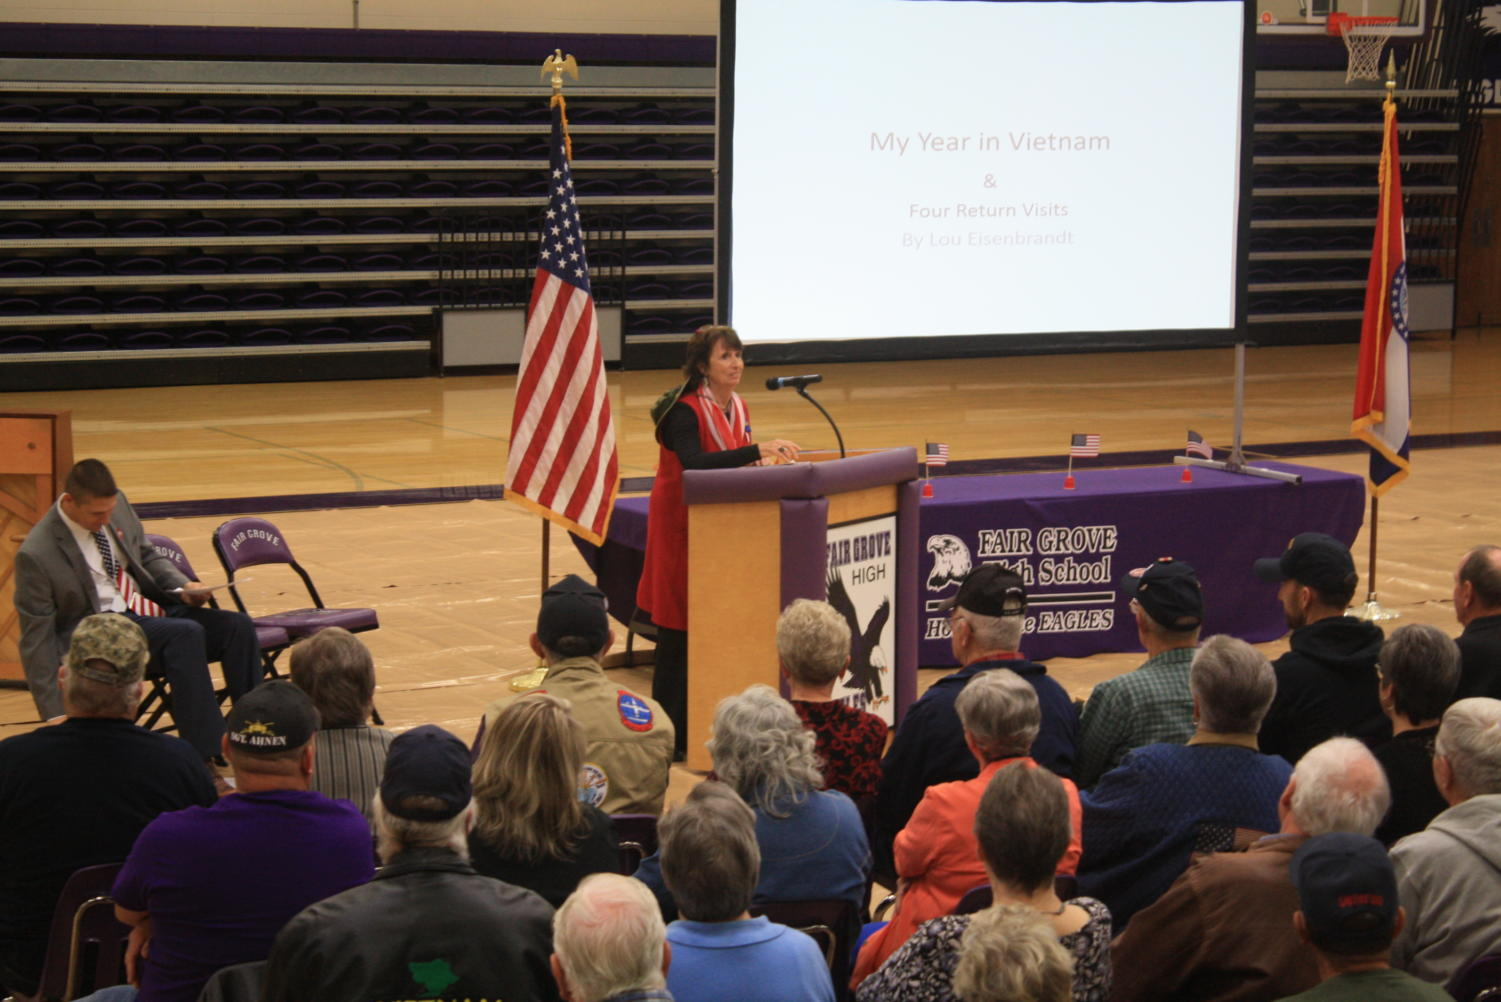 Lou Eisenbrandt speaks of her time in Vietnam to students and veterans.